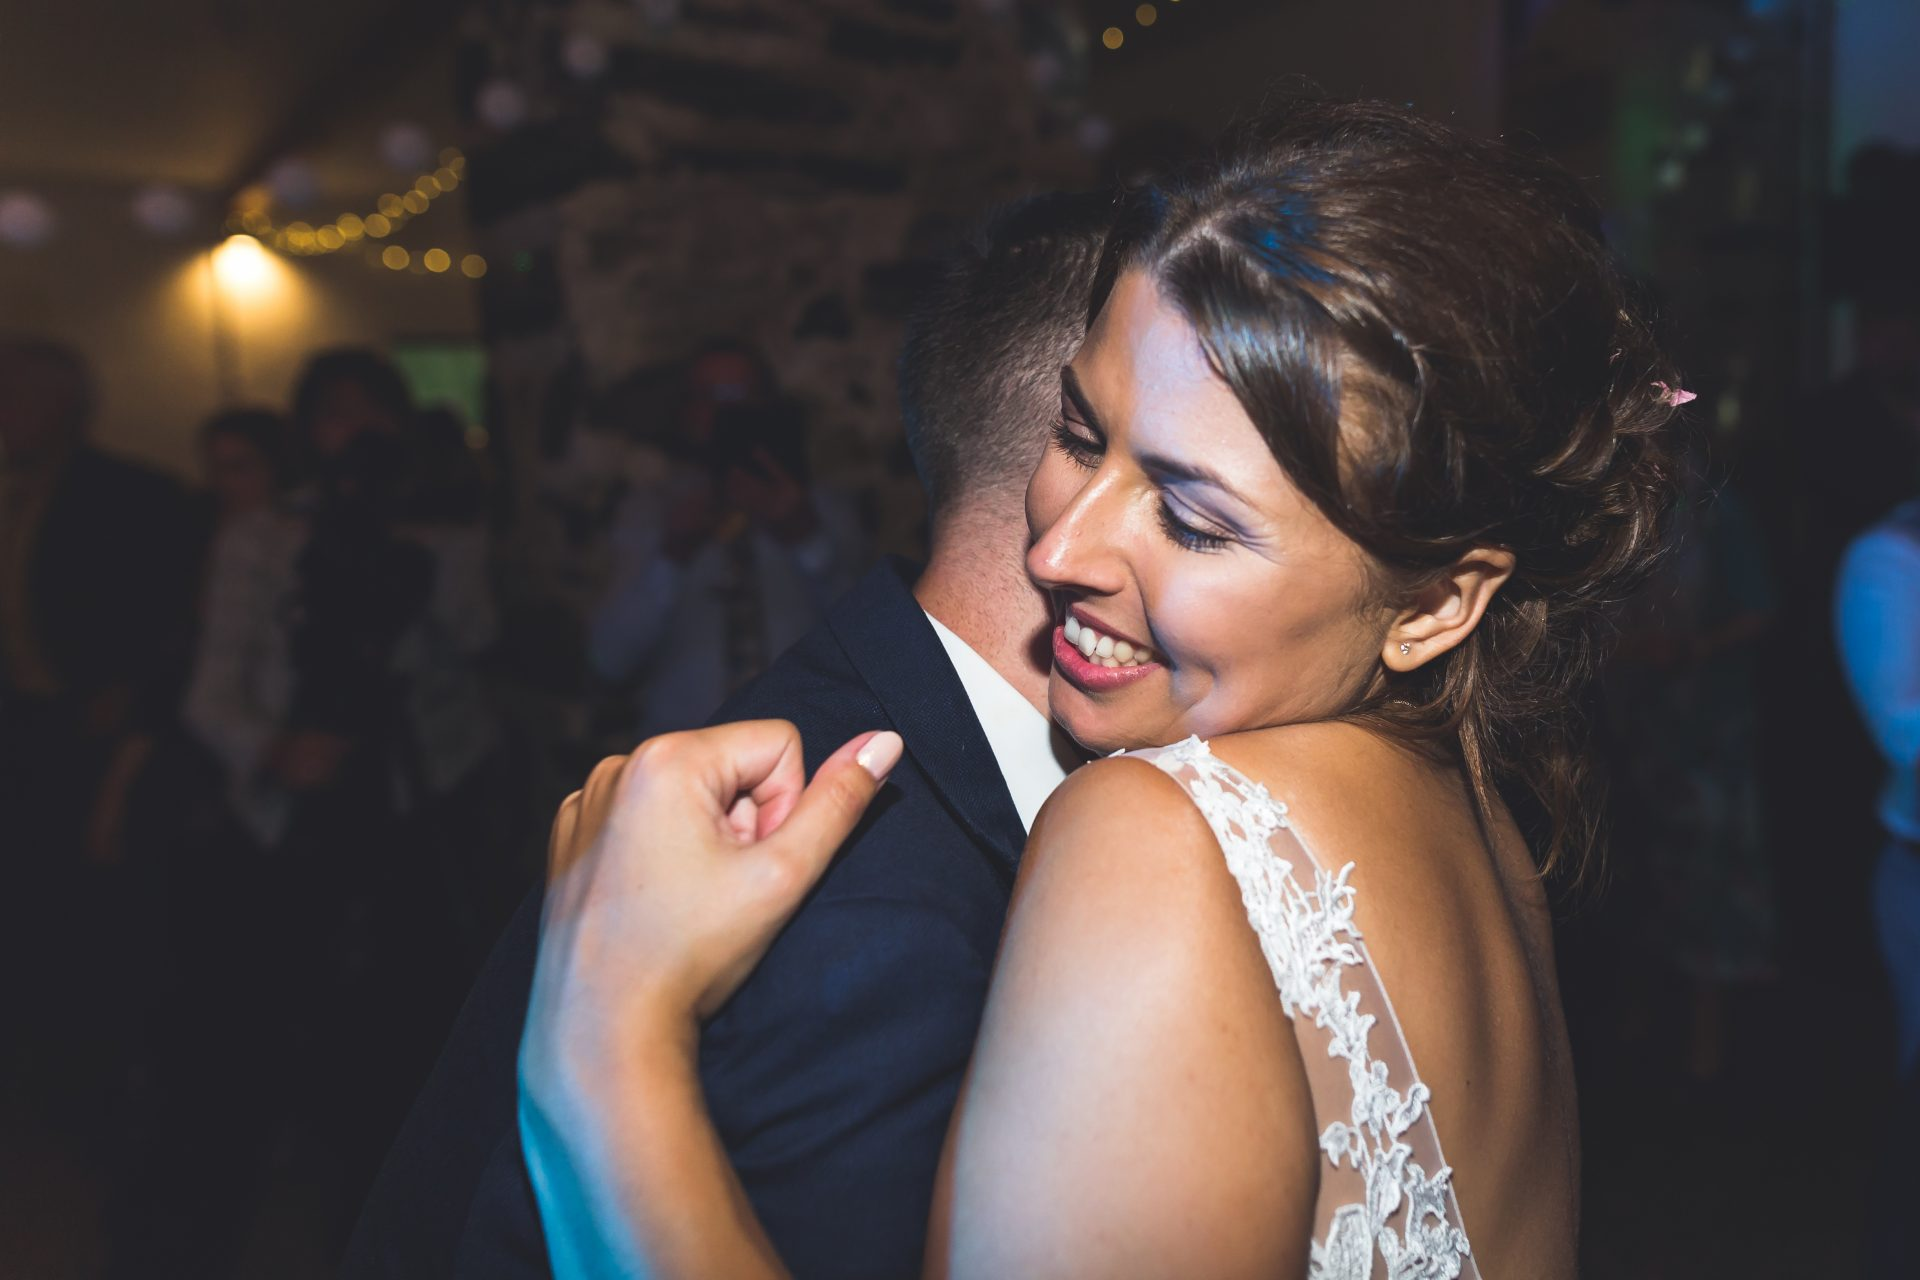 Bride and Groom first dance at their Llyn Gwynant wedding